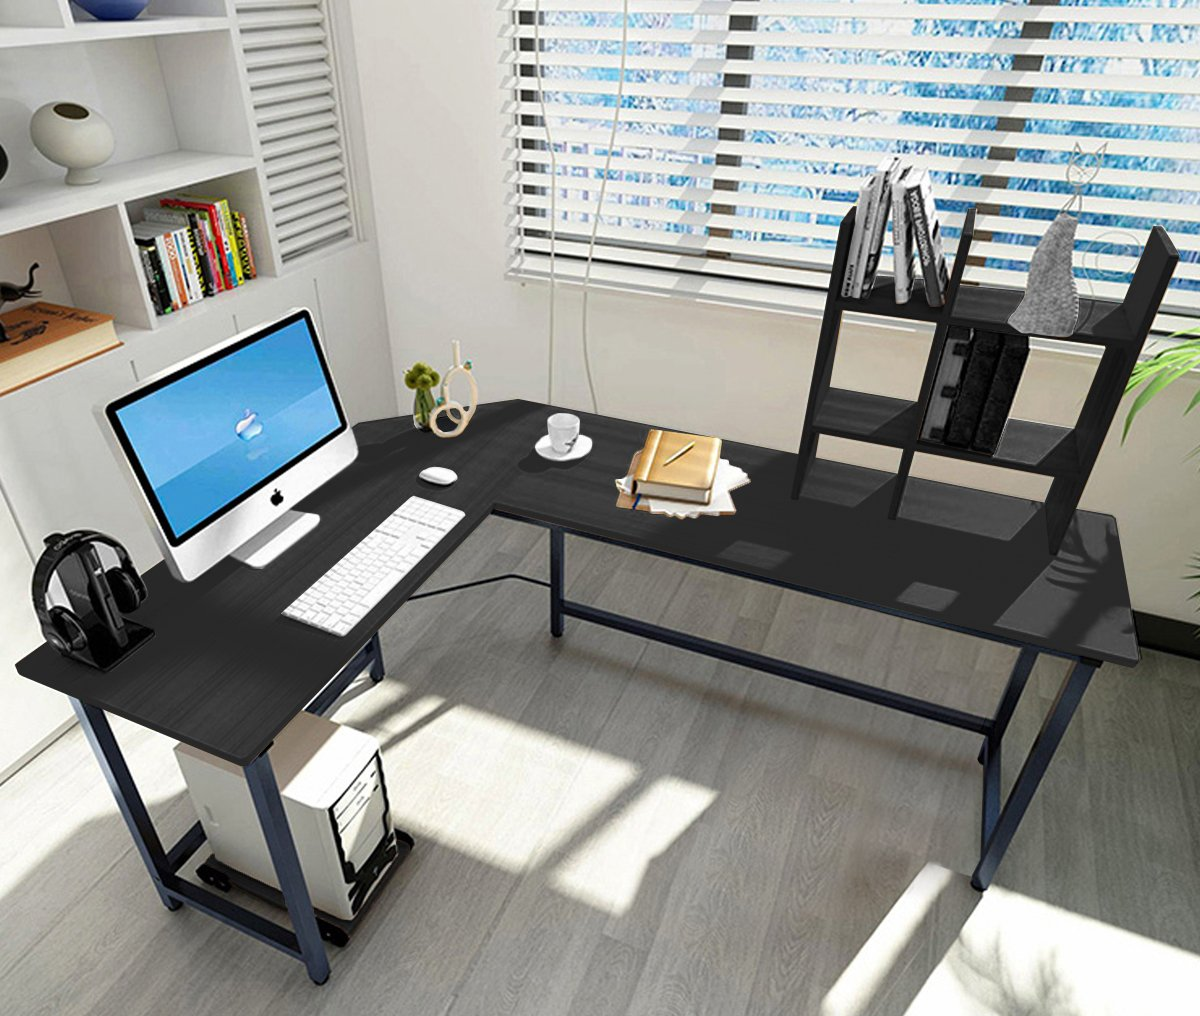 L-shaped Large Computer Desk Table Office Laptop PC Workstation with Free CUP Stand and Storage Shelf (Black)